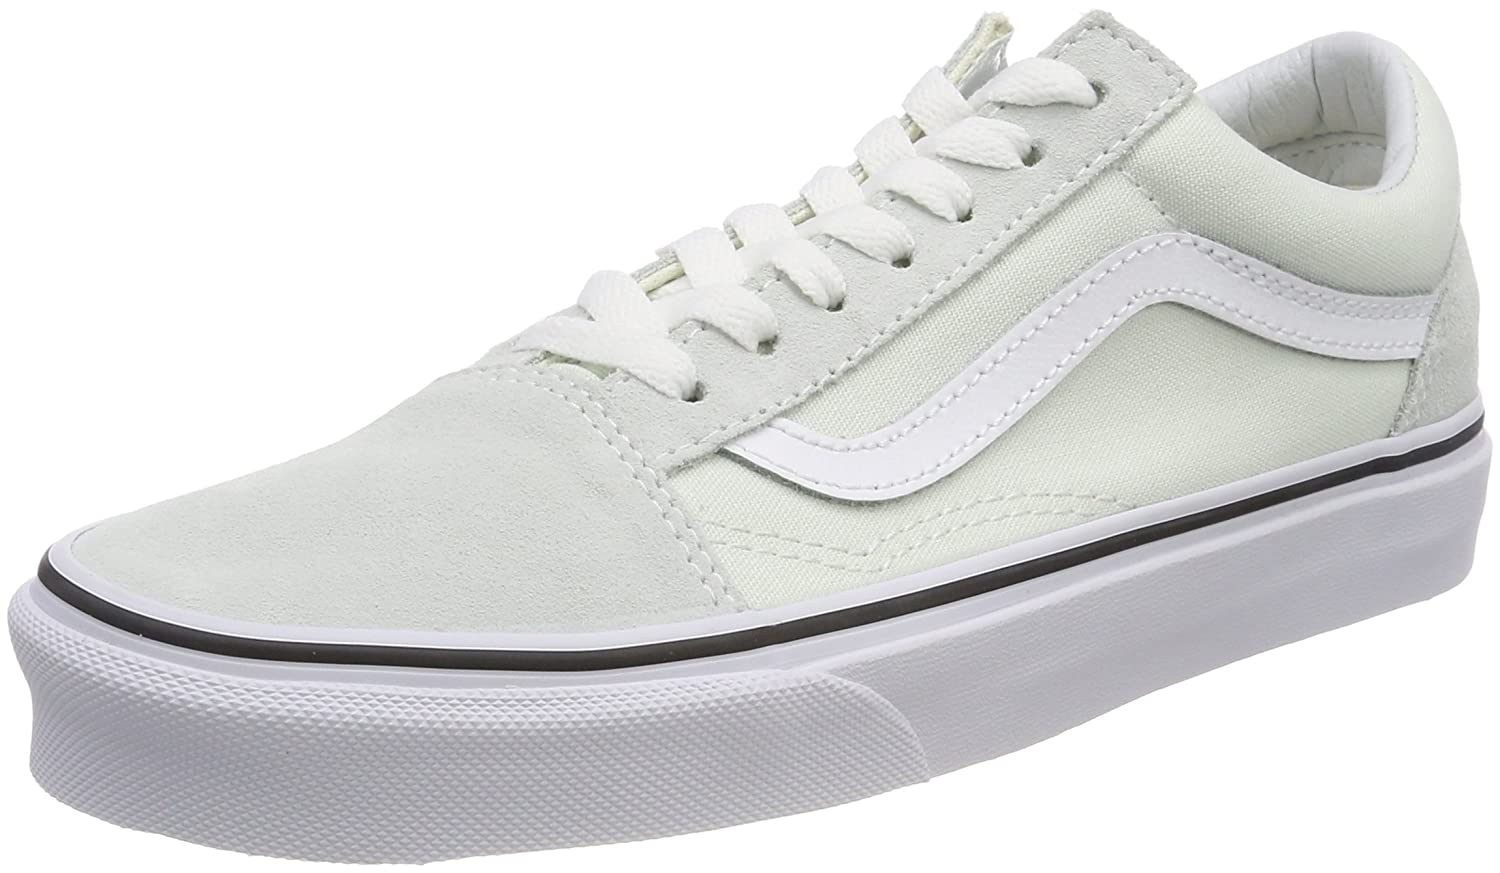 0308b5d911 Vans Women s Old Skool Trainers  Amazon.co.uk  Shoes   Bags